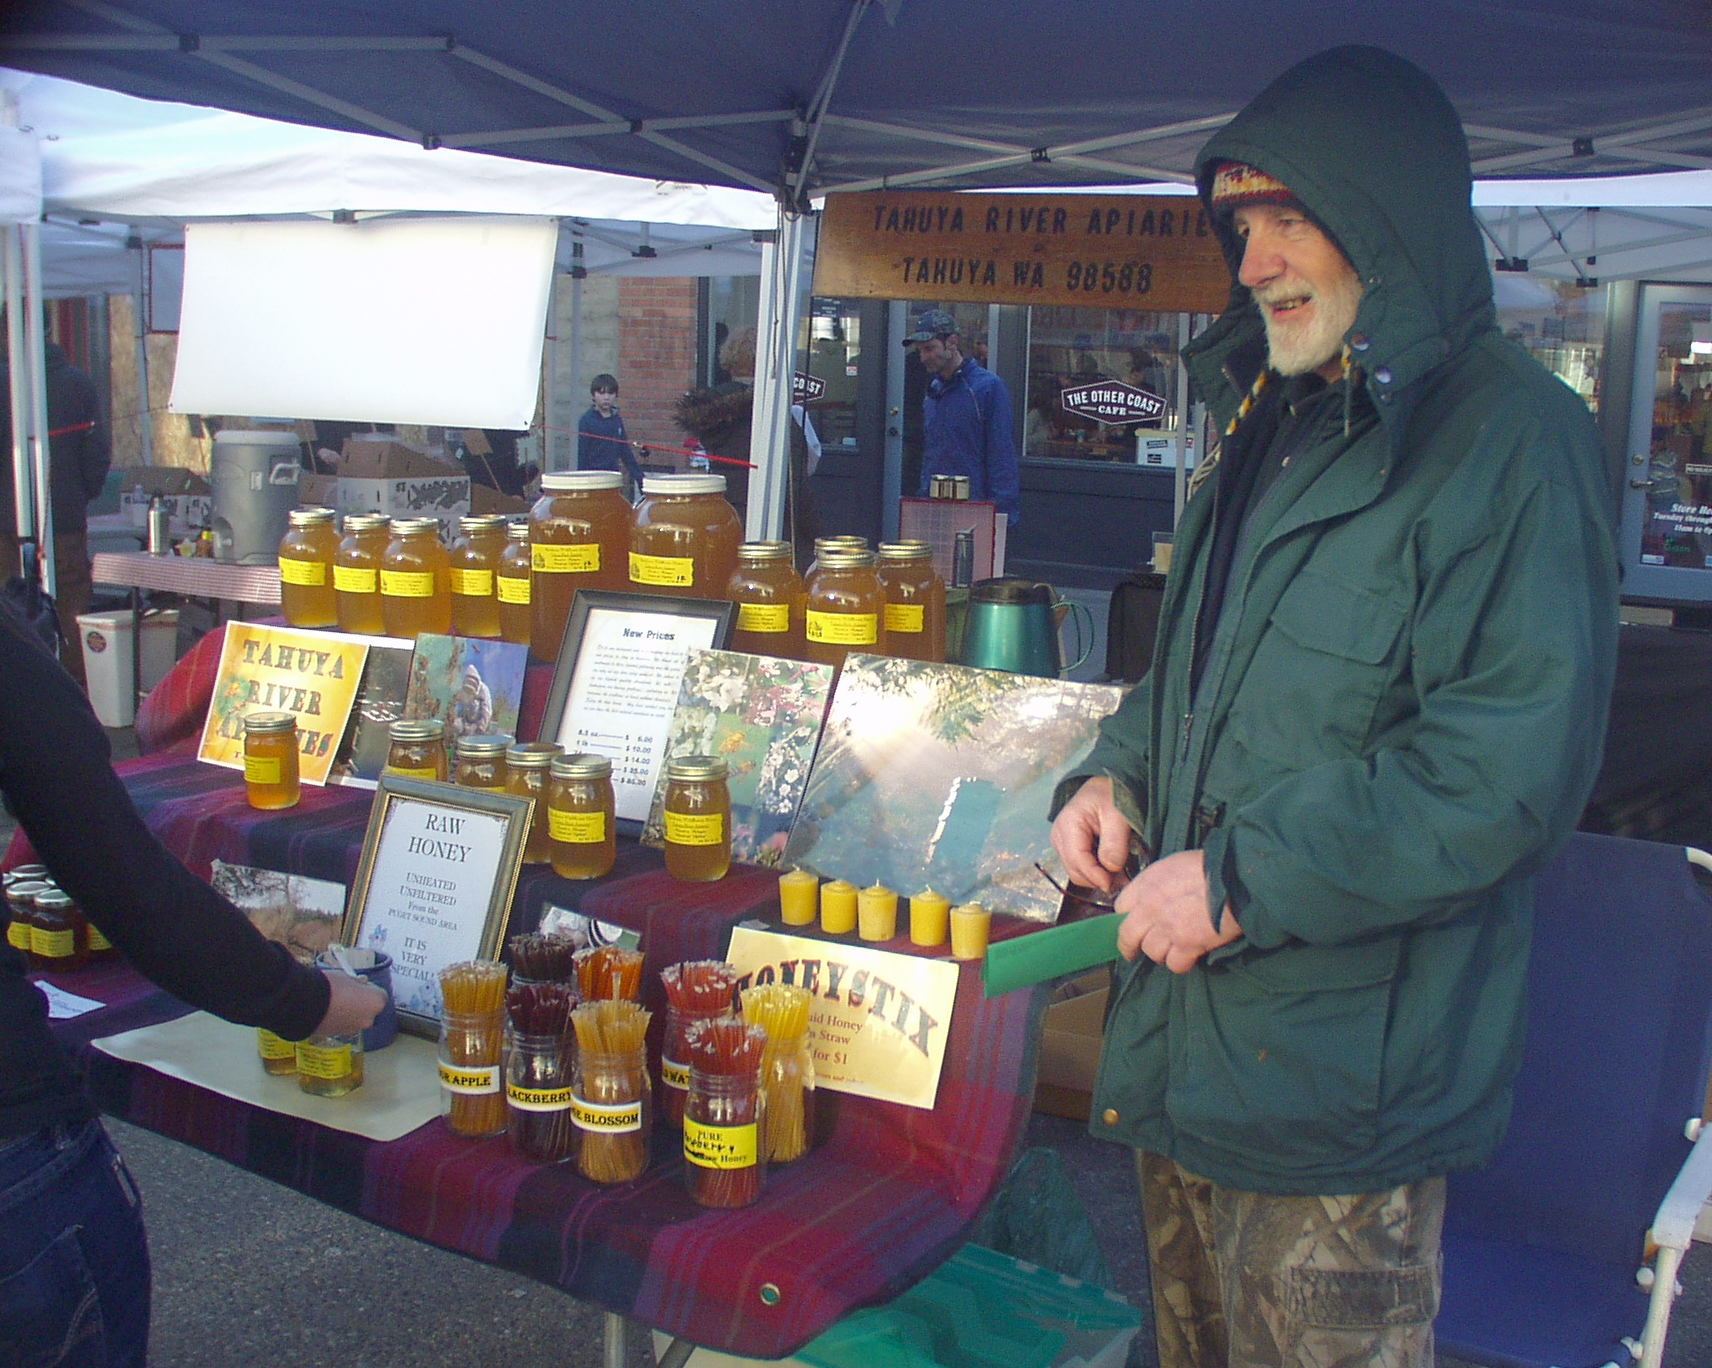 Roy Nettlebeck, owner of Tahuya River Apiaries, at the market in January 2009.  Photo copyright 2009 by Zachary D. Lyons